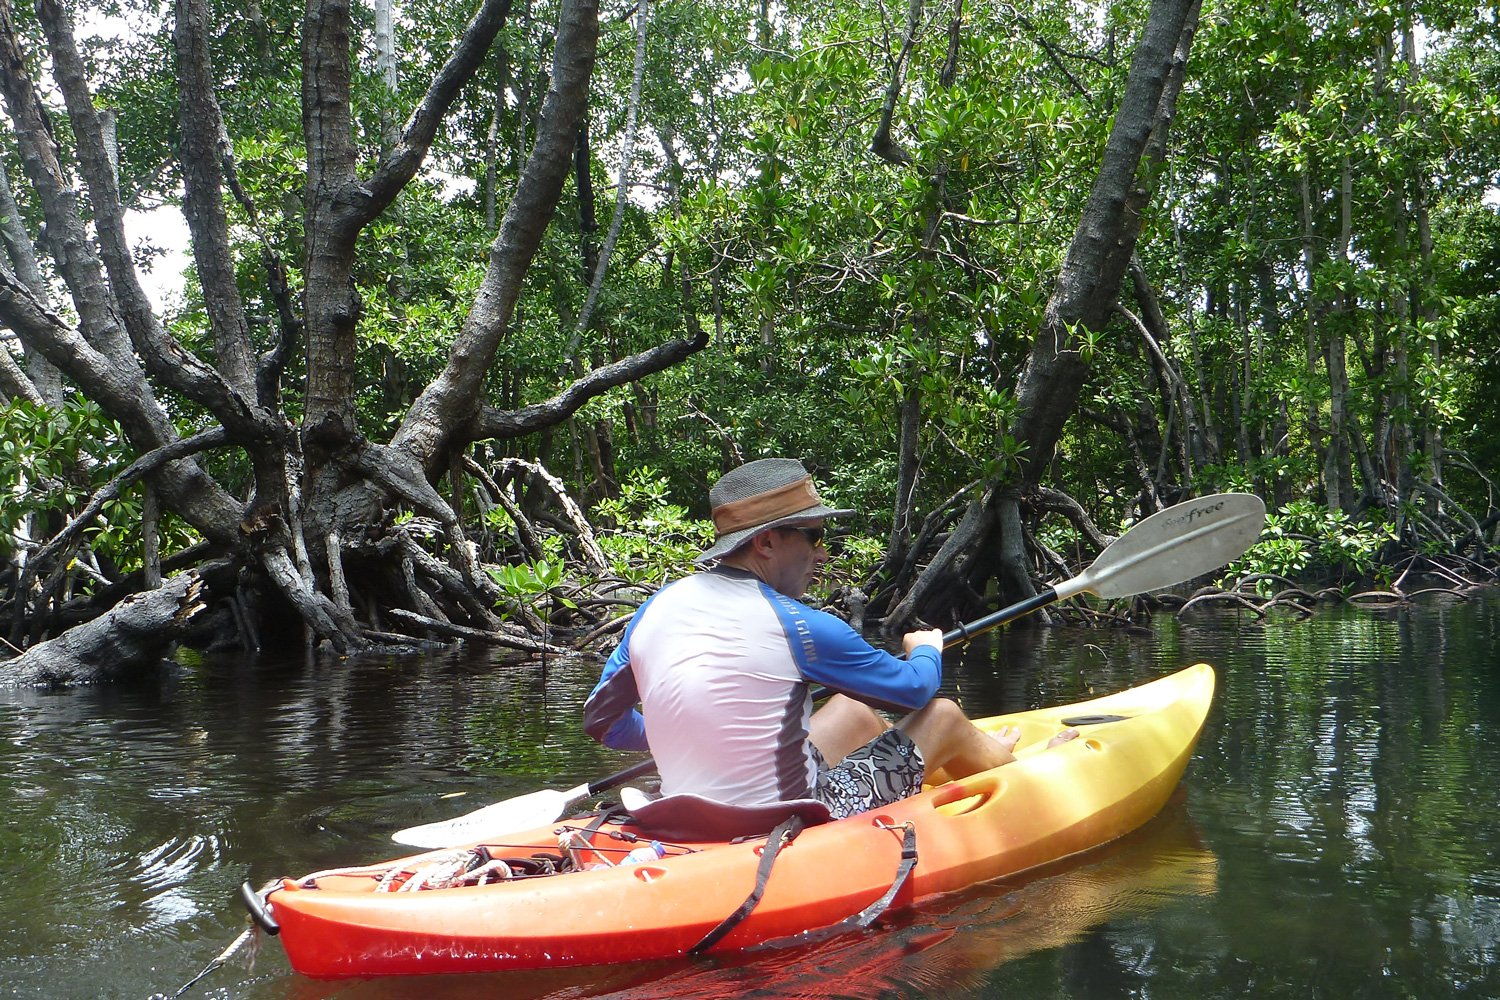 Explore the mangroves and waterways in a kayak